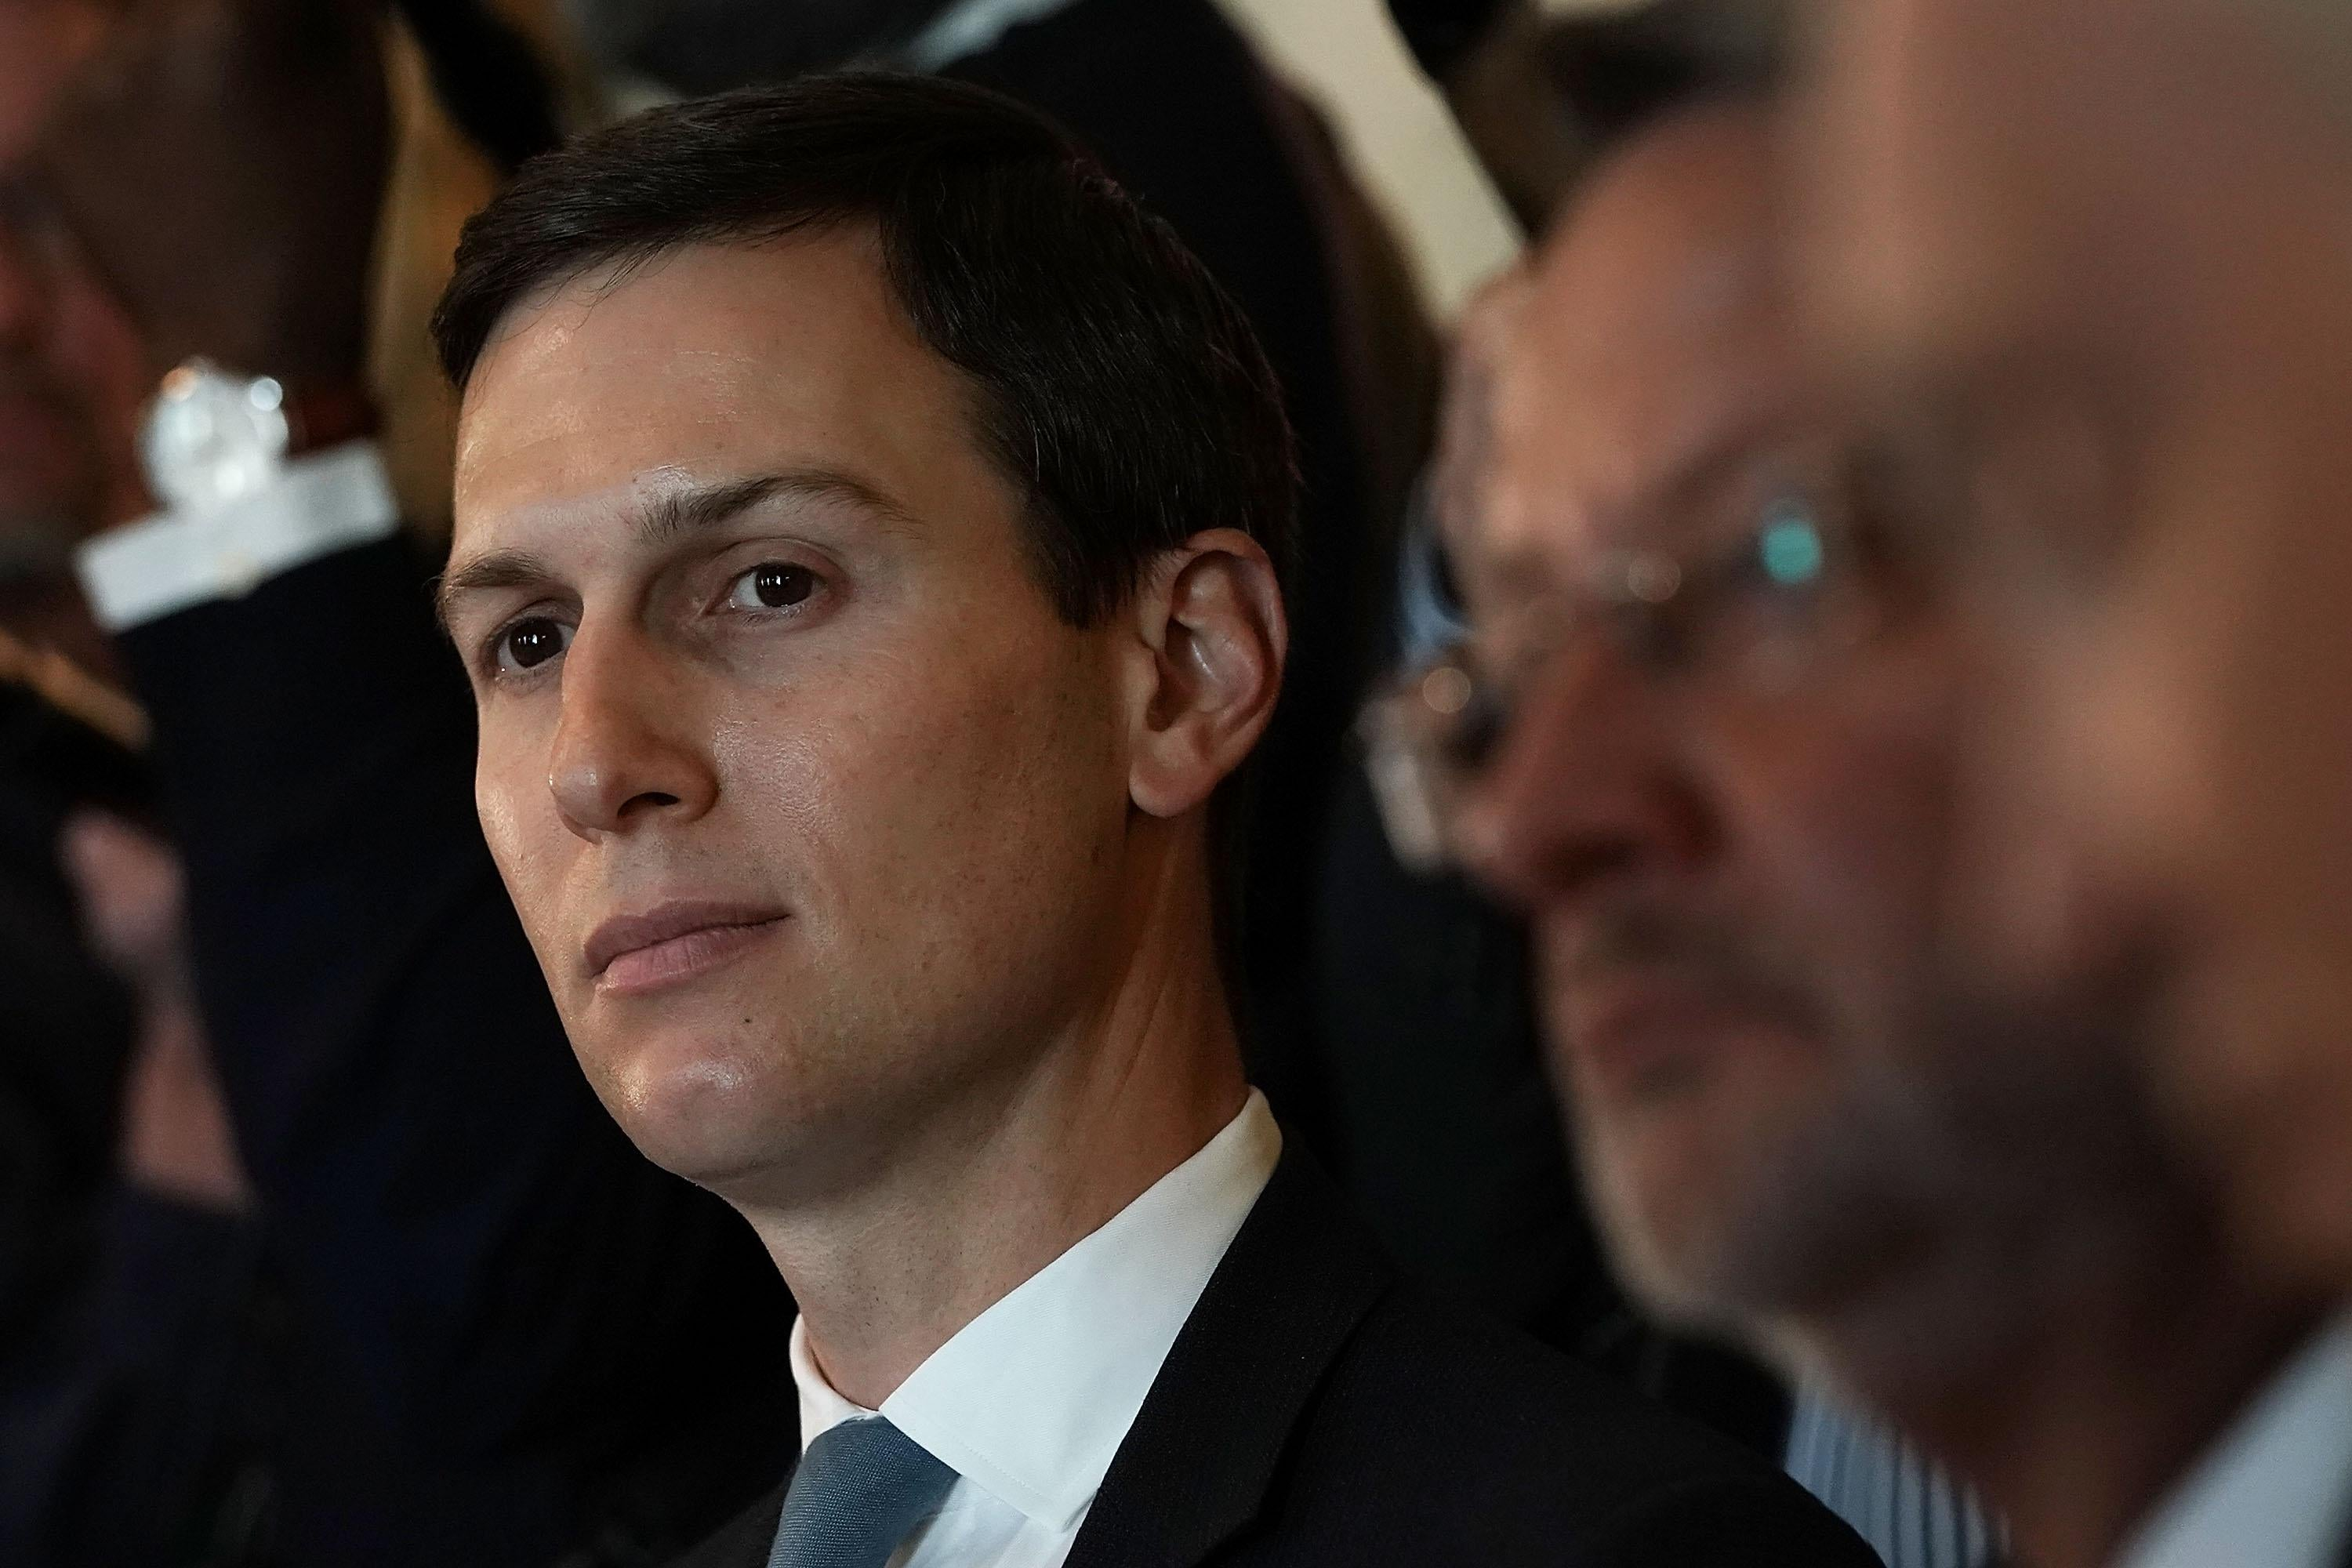 Jared Kushner listens during a meeting between President Donald Trump and congressional members in the Cabinet Room of the White House February 13, 2018 in Washington, D.C.